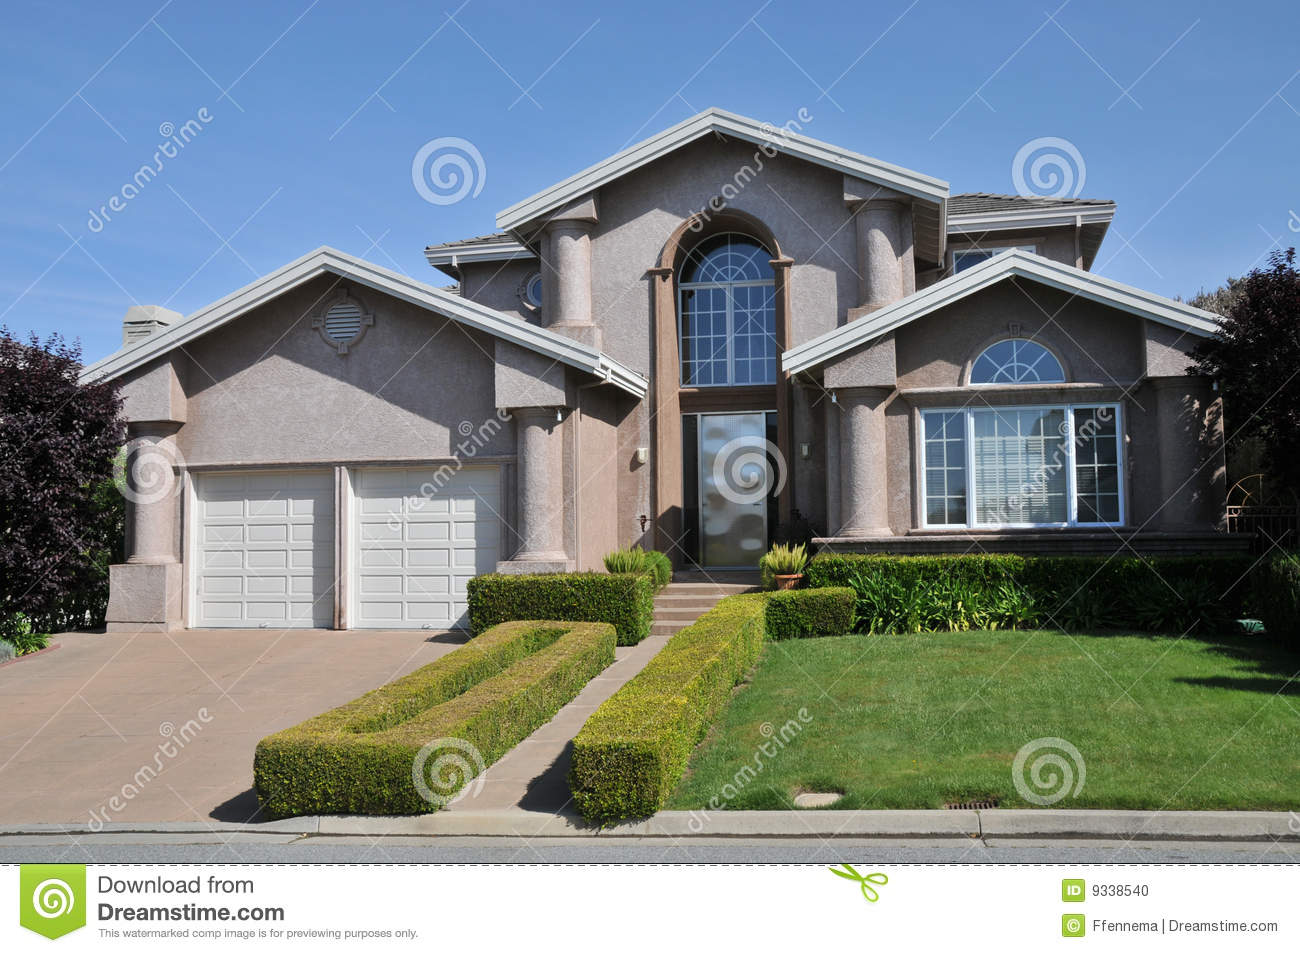 Two car garage house with decorative schrubs stock photo for House in garage